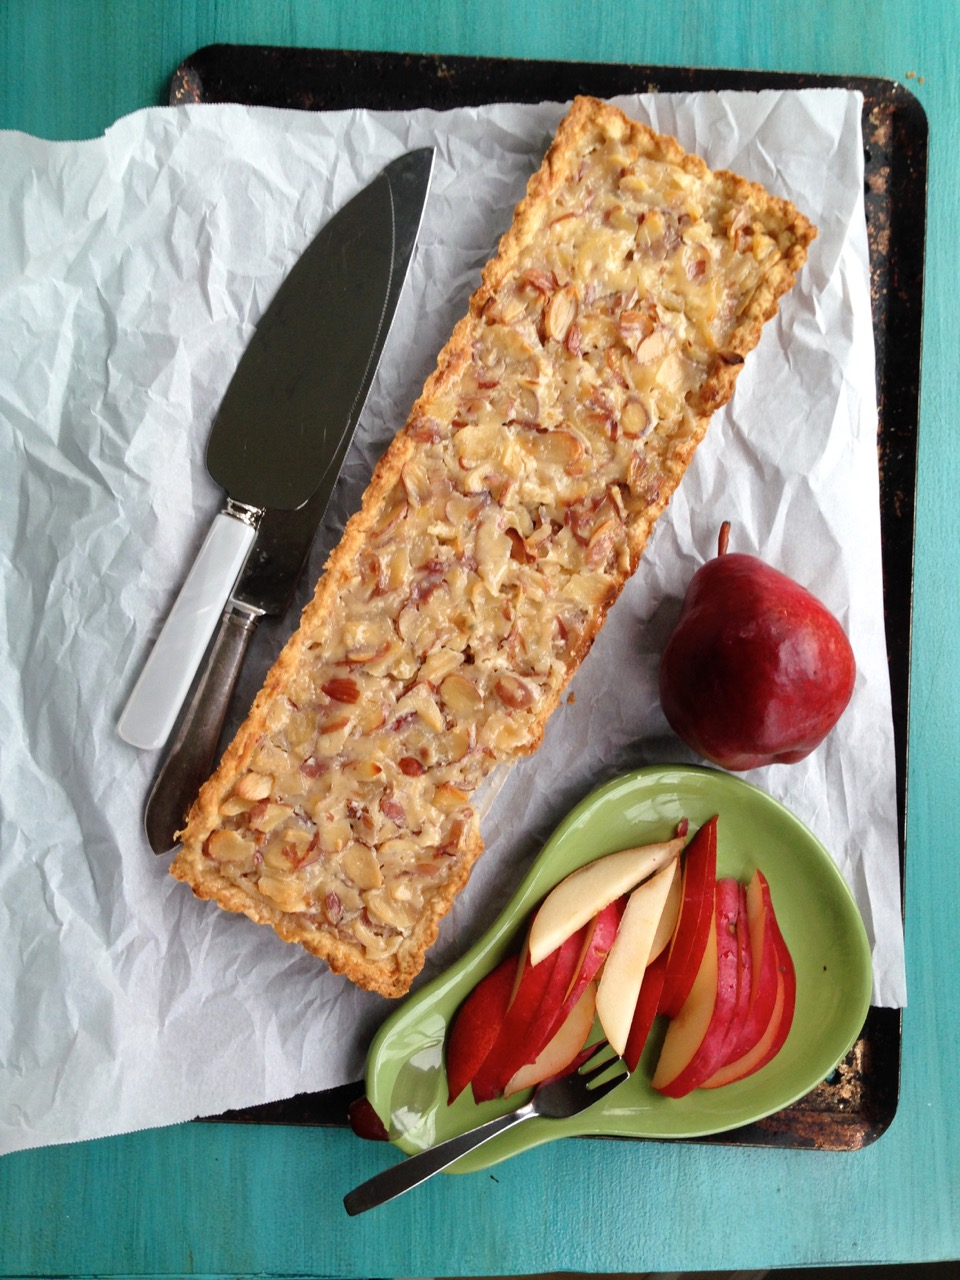 Pear Almond Tart from Spinach Tiger